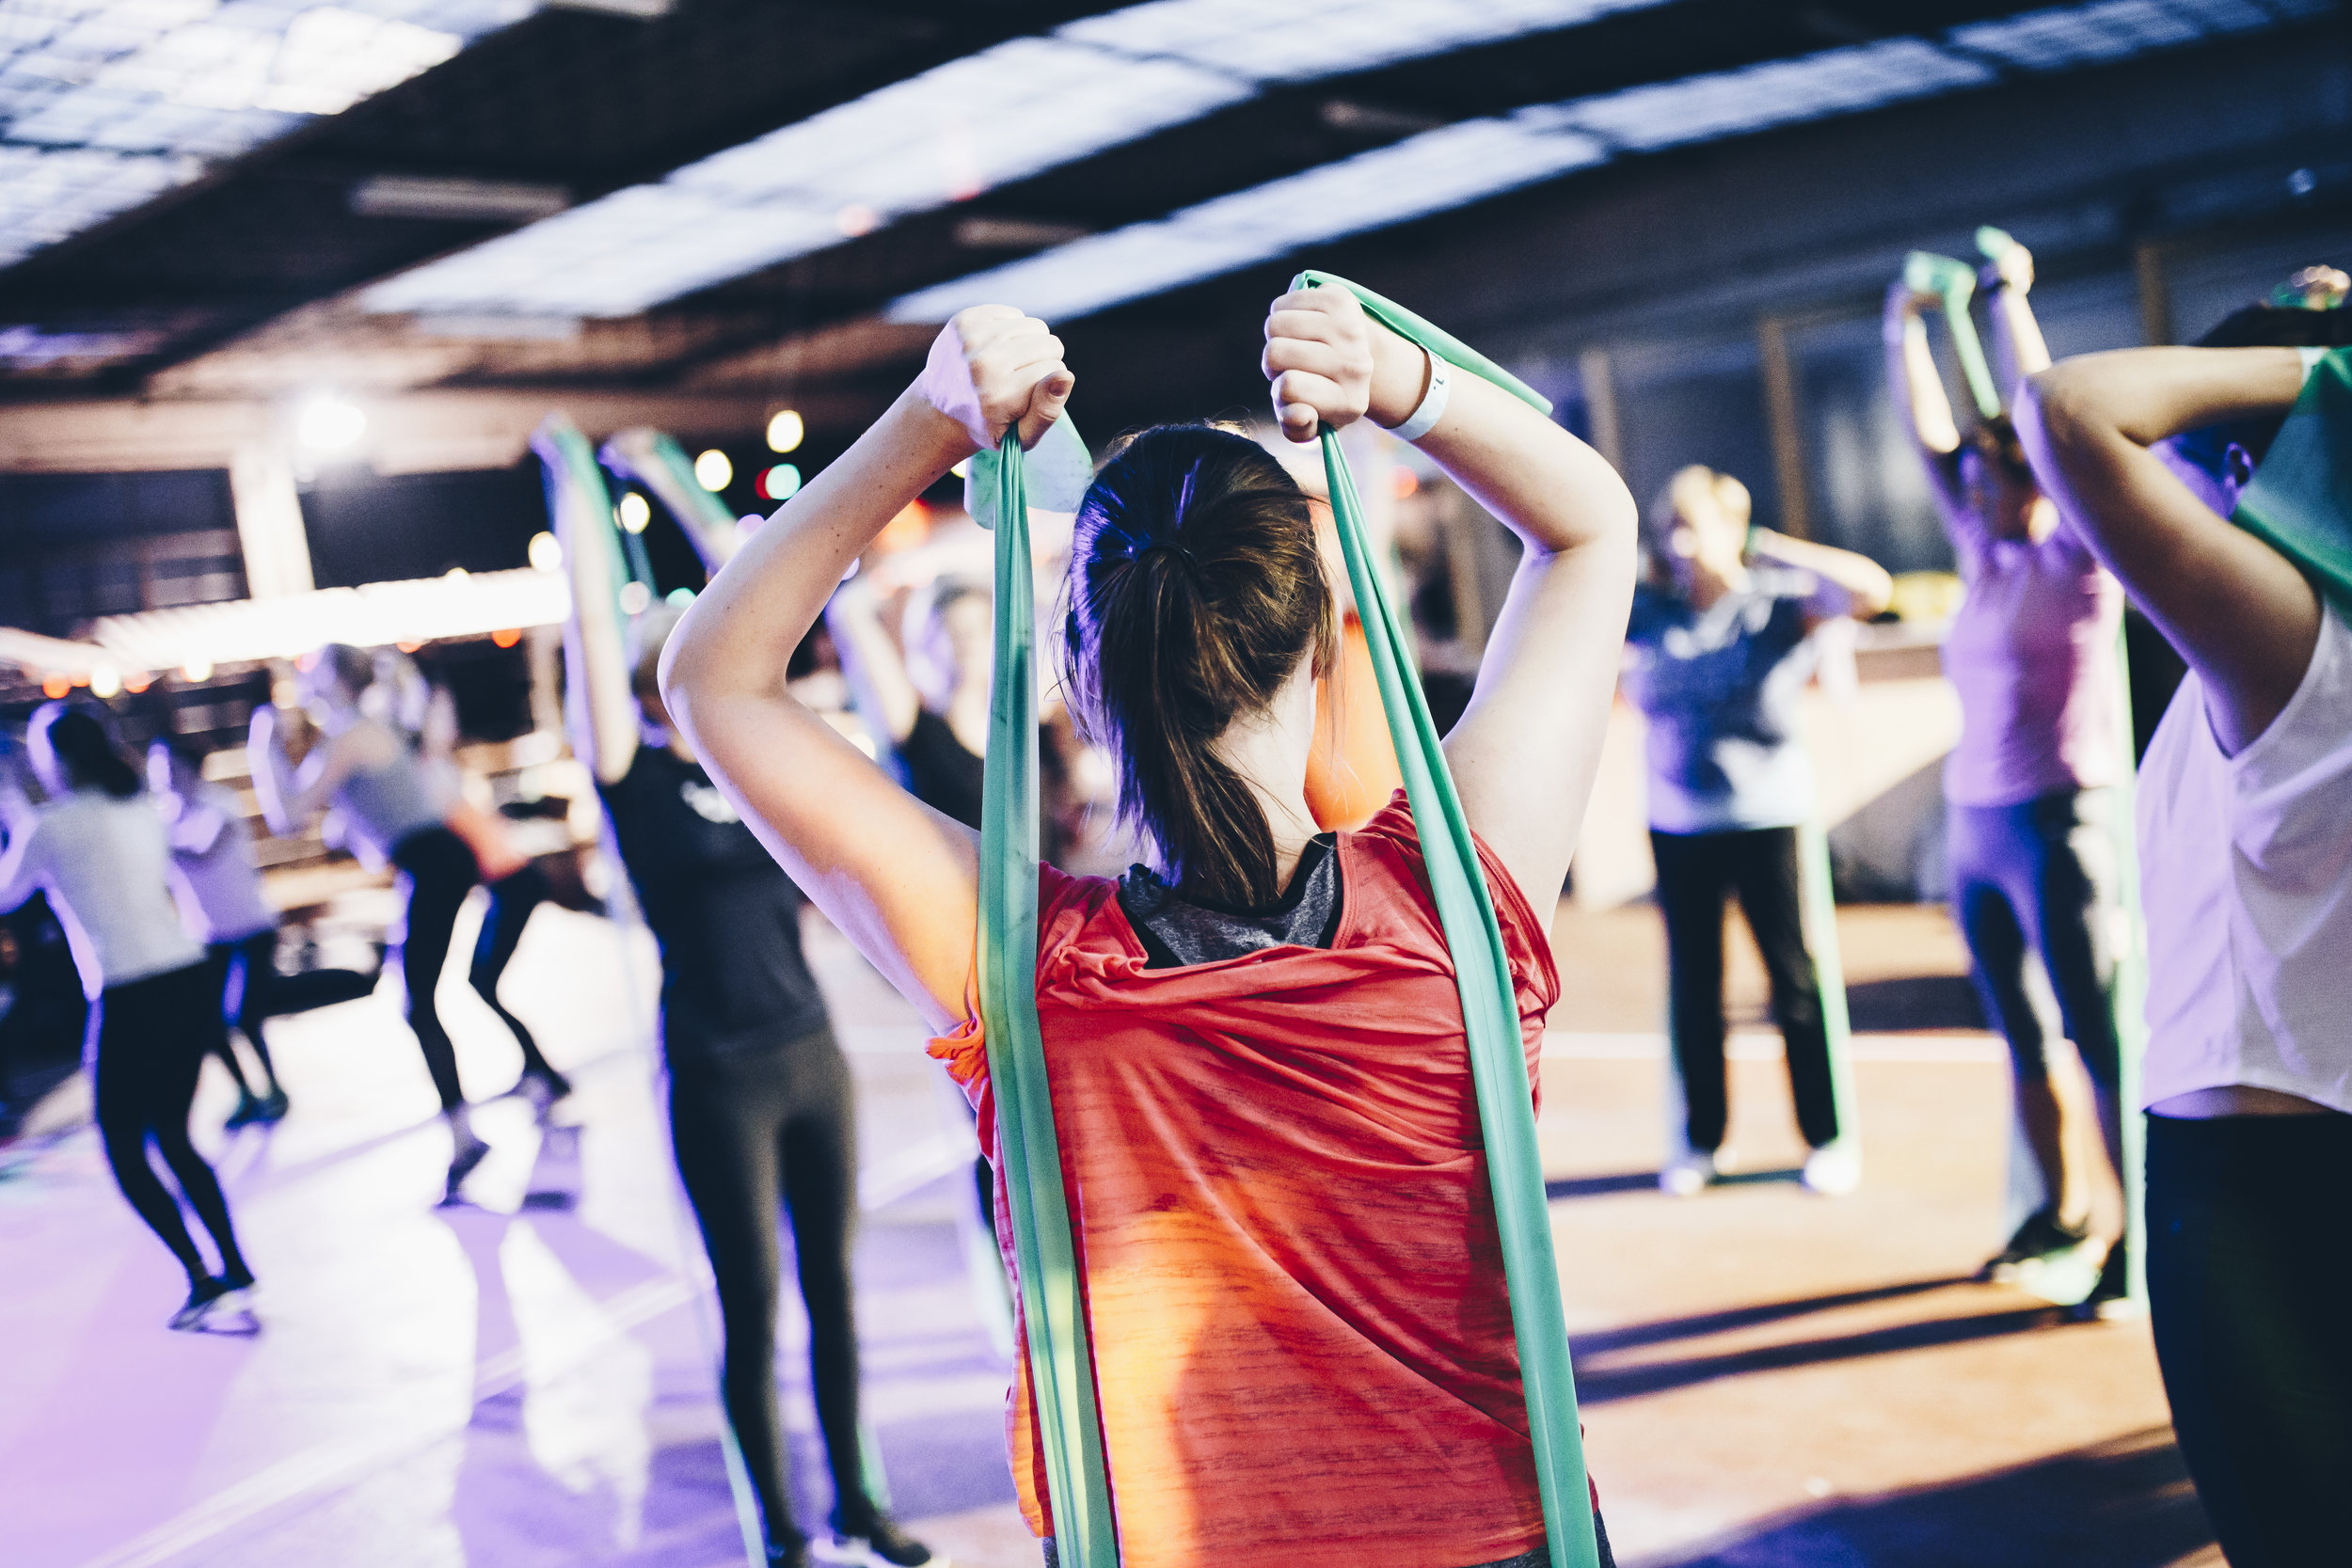 Group Fitness Classes - - Dynamic & Engaging Programming- Scalable To All Body Shapes & Sizes- 100% Judgement Free Zone- Supportive Community To Win Goals